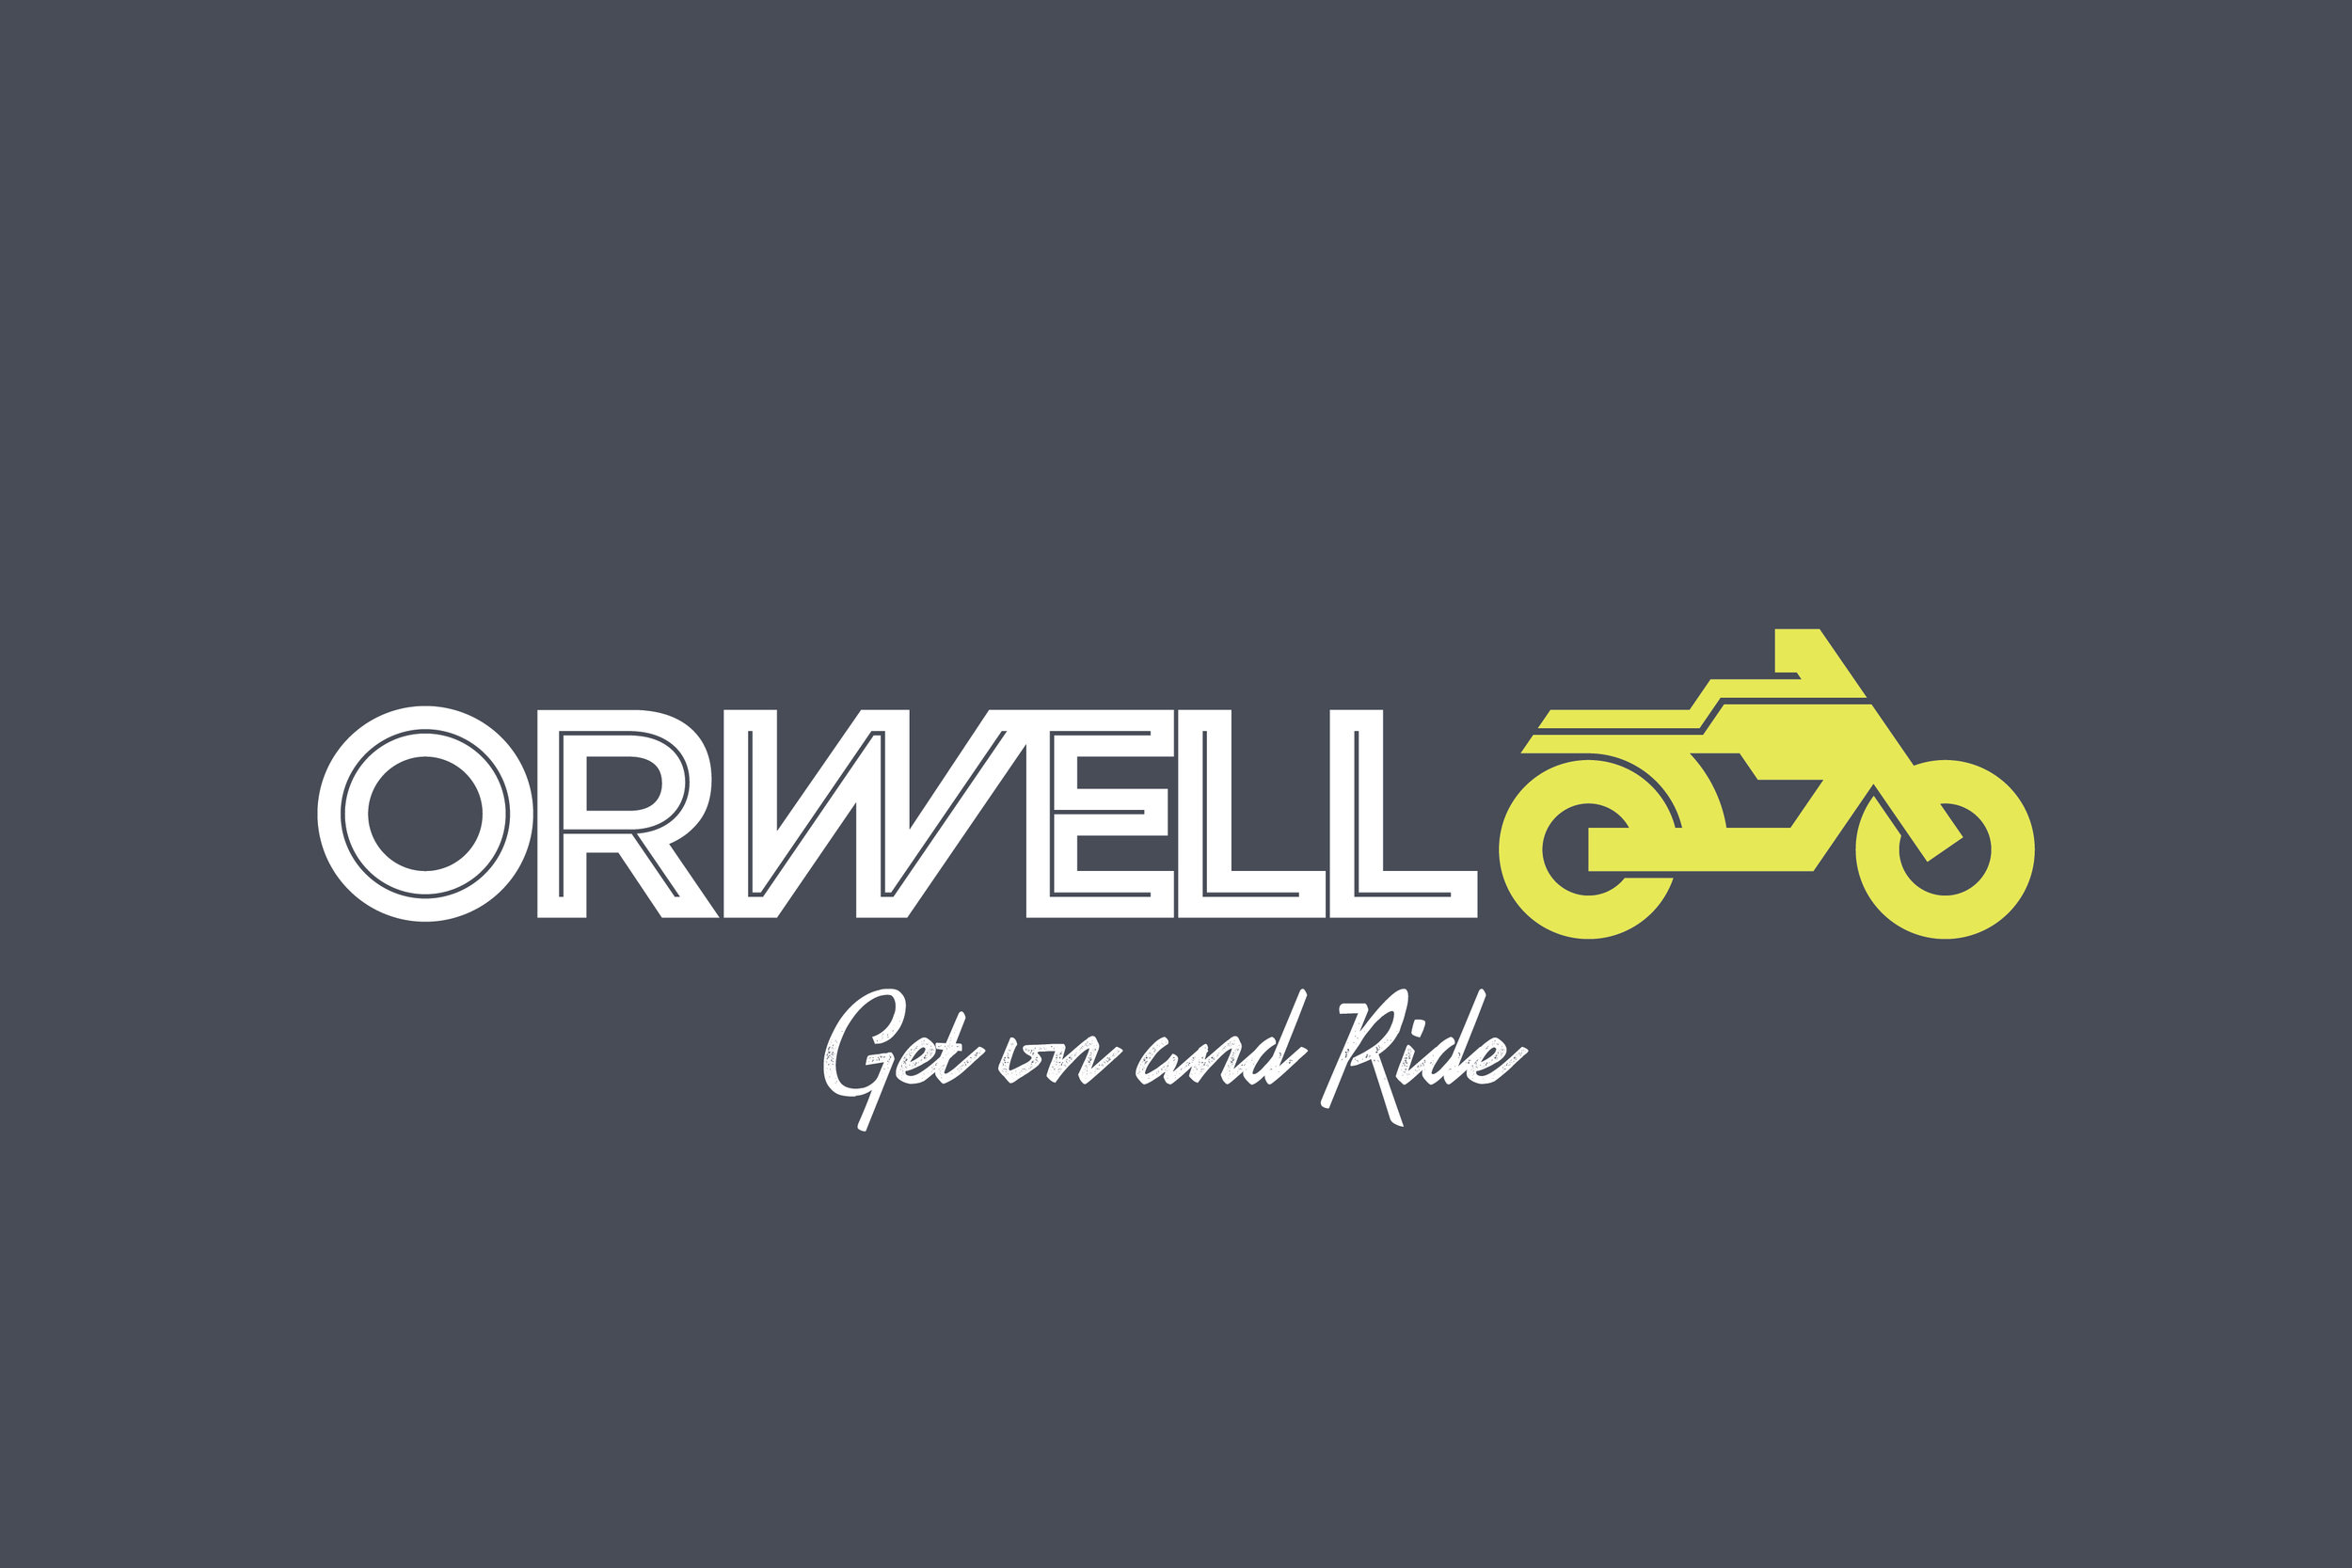 Orwell_Horizontal_Tag Line_Yellow Bike_White text.jpg